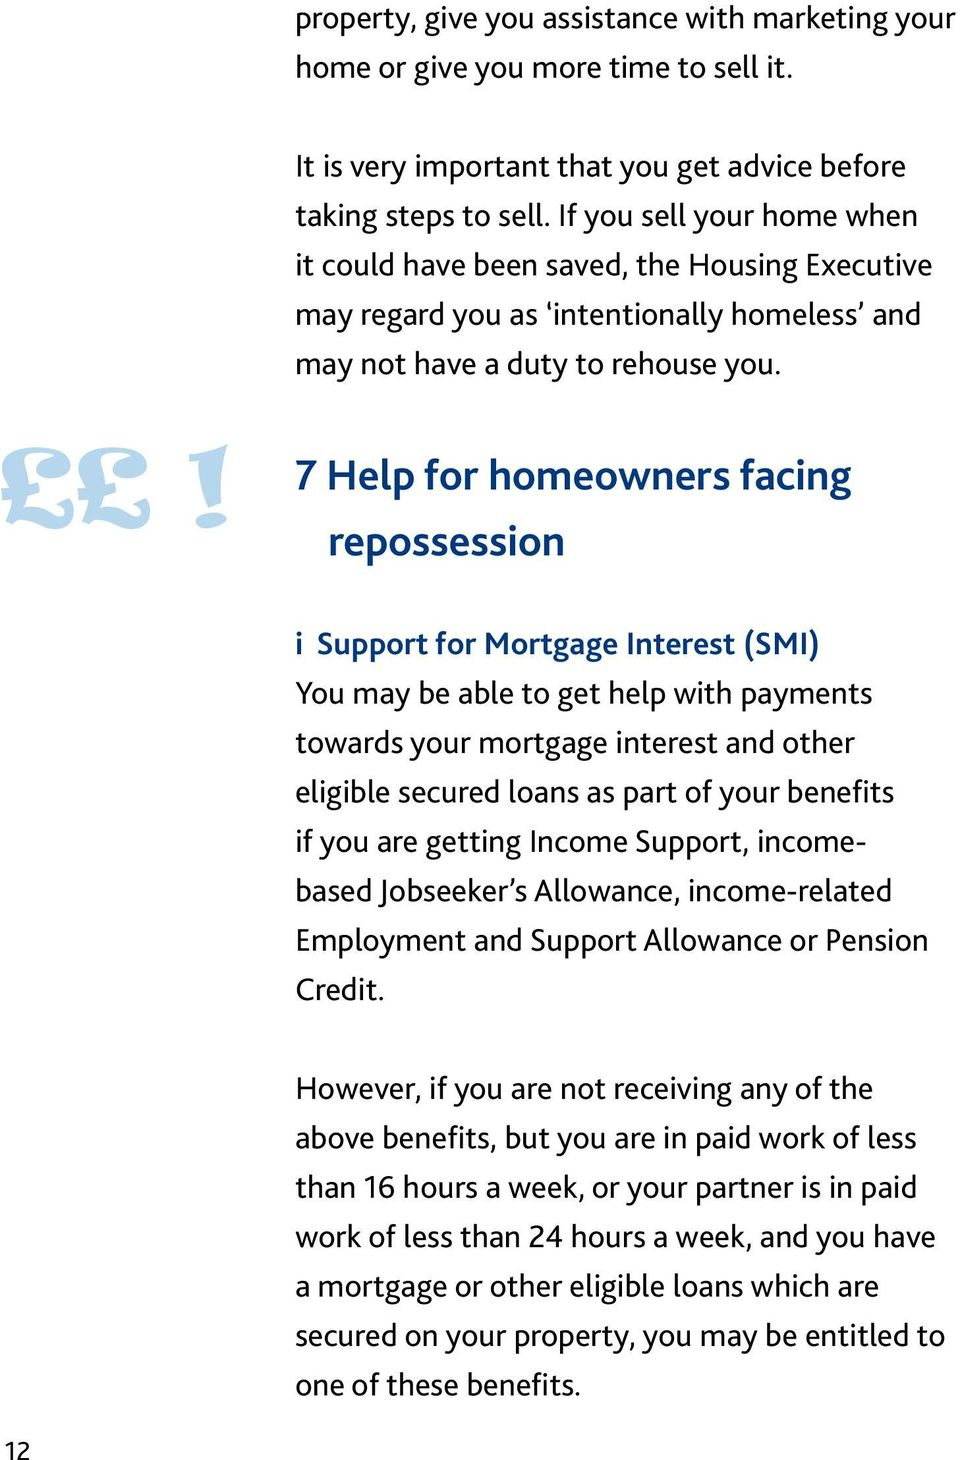 ! 7 Help for homeowners facing repossession i Support for Mortgage Interest (SMI) You may be able to get help with payments towards your mortgage interest and other eligible secured loans as part of